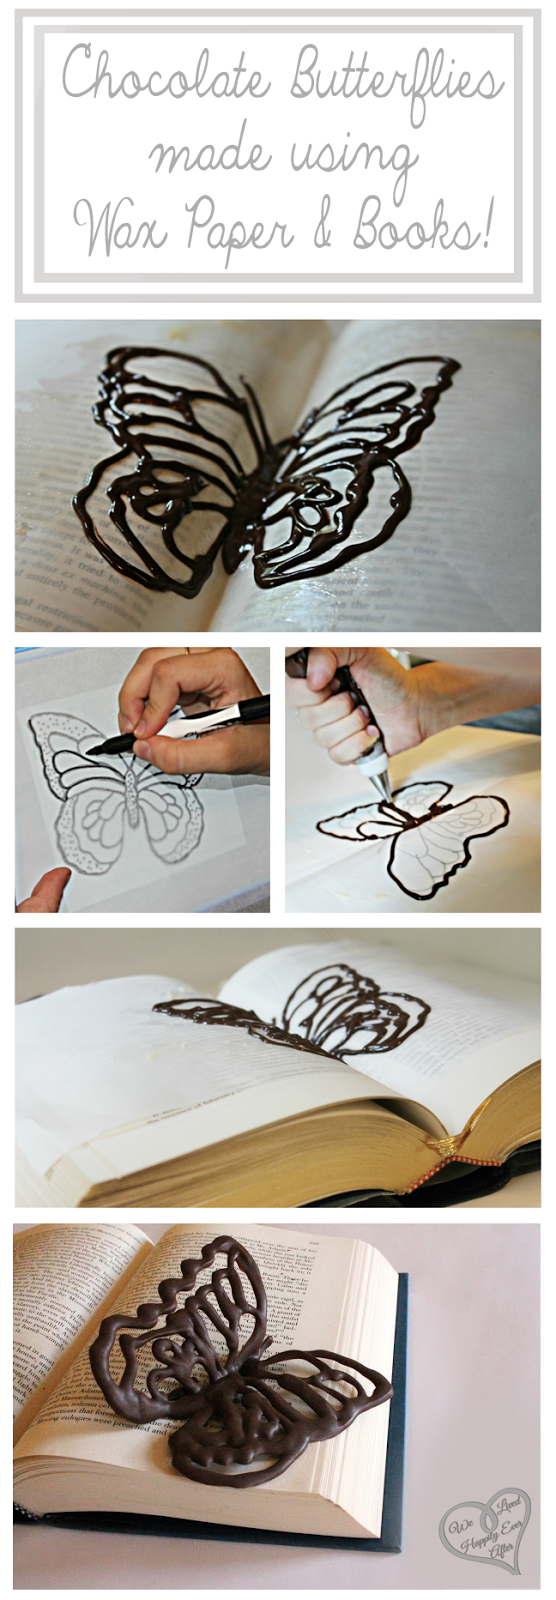 How To Make Chocolate Designs On Wax Paper